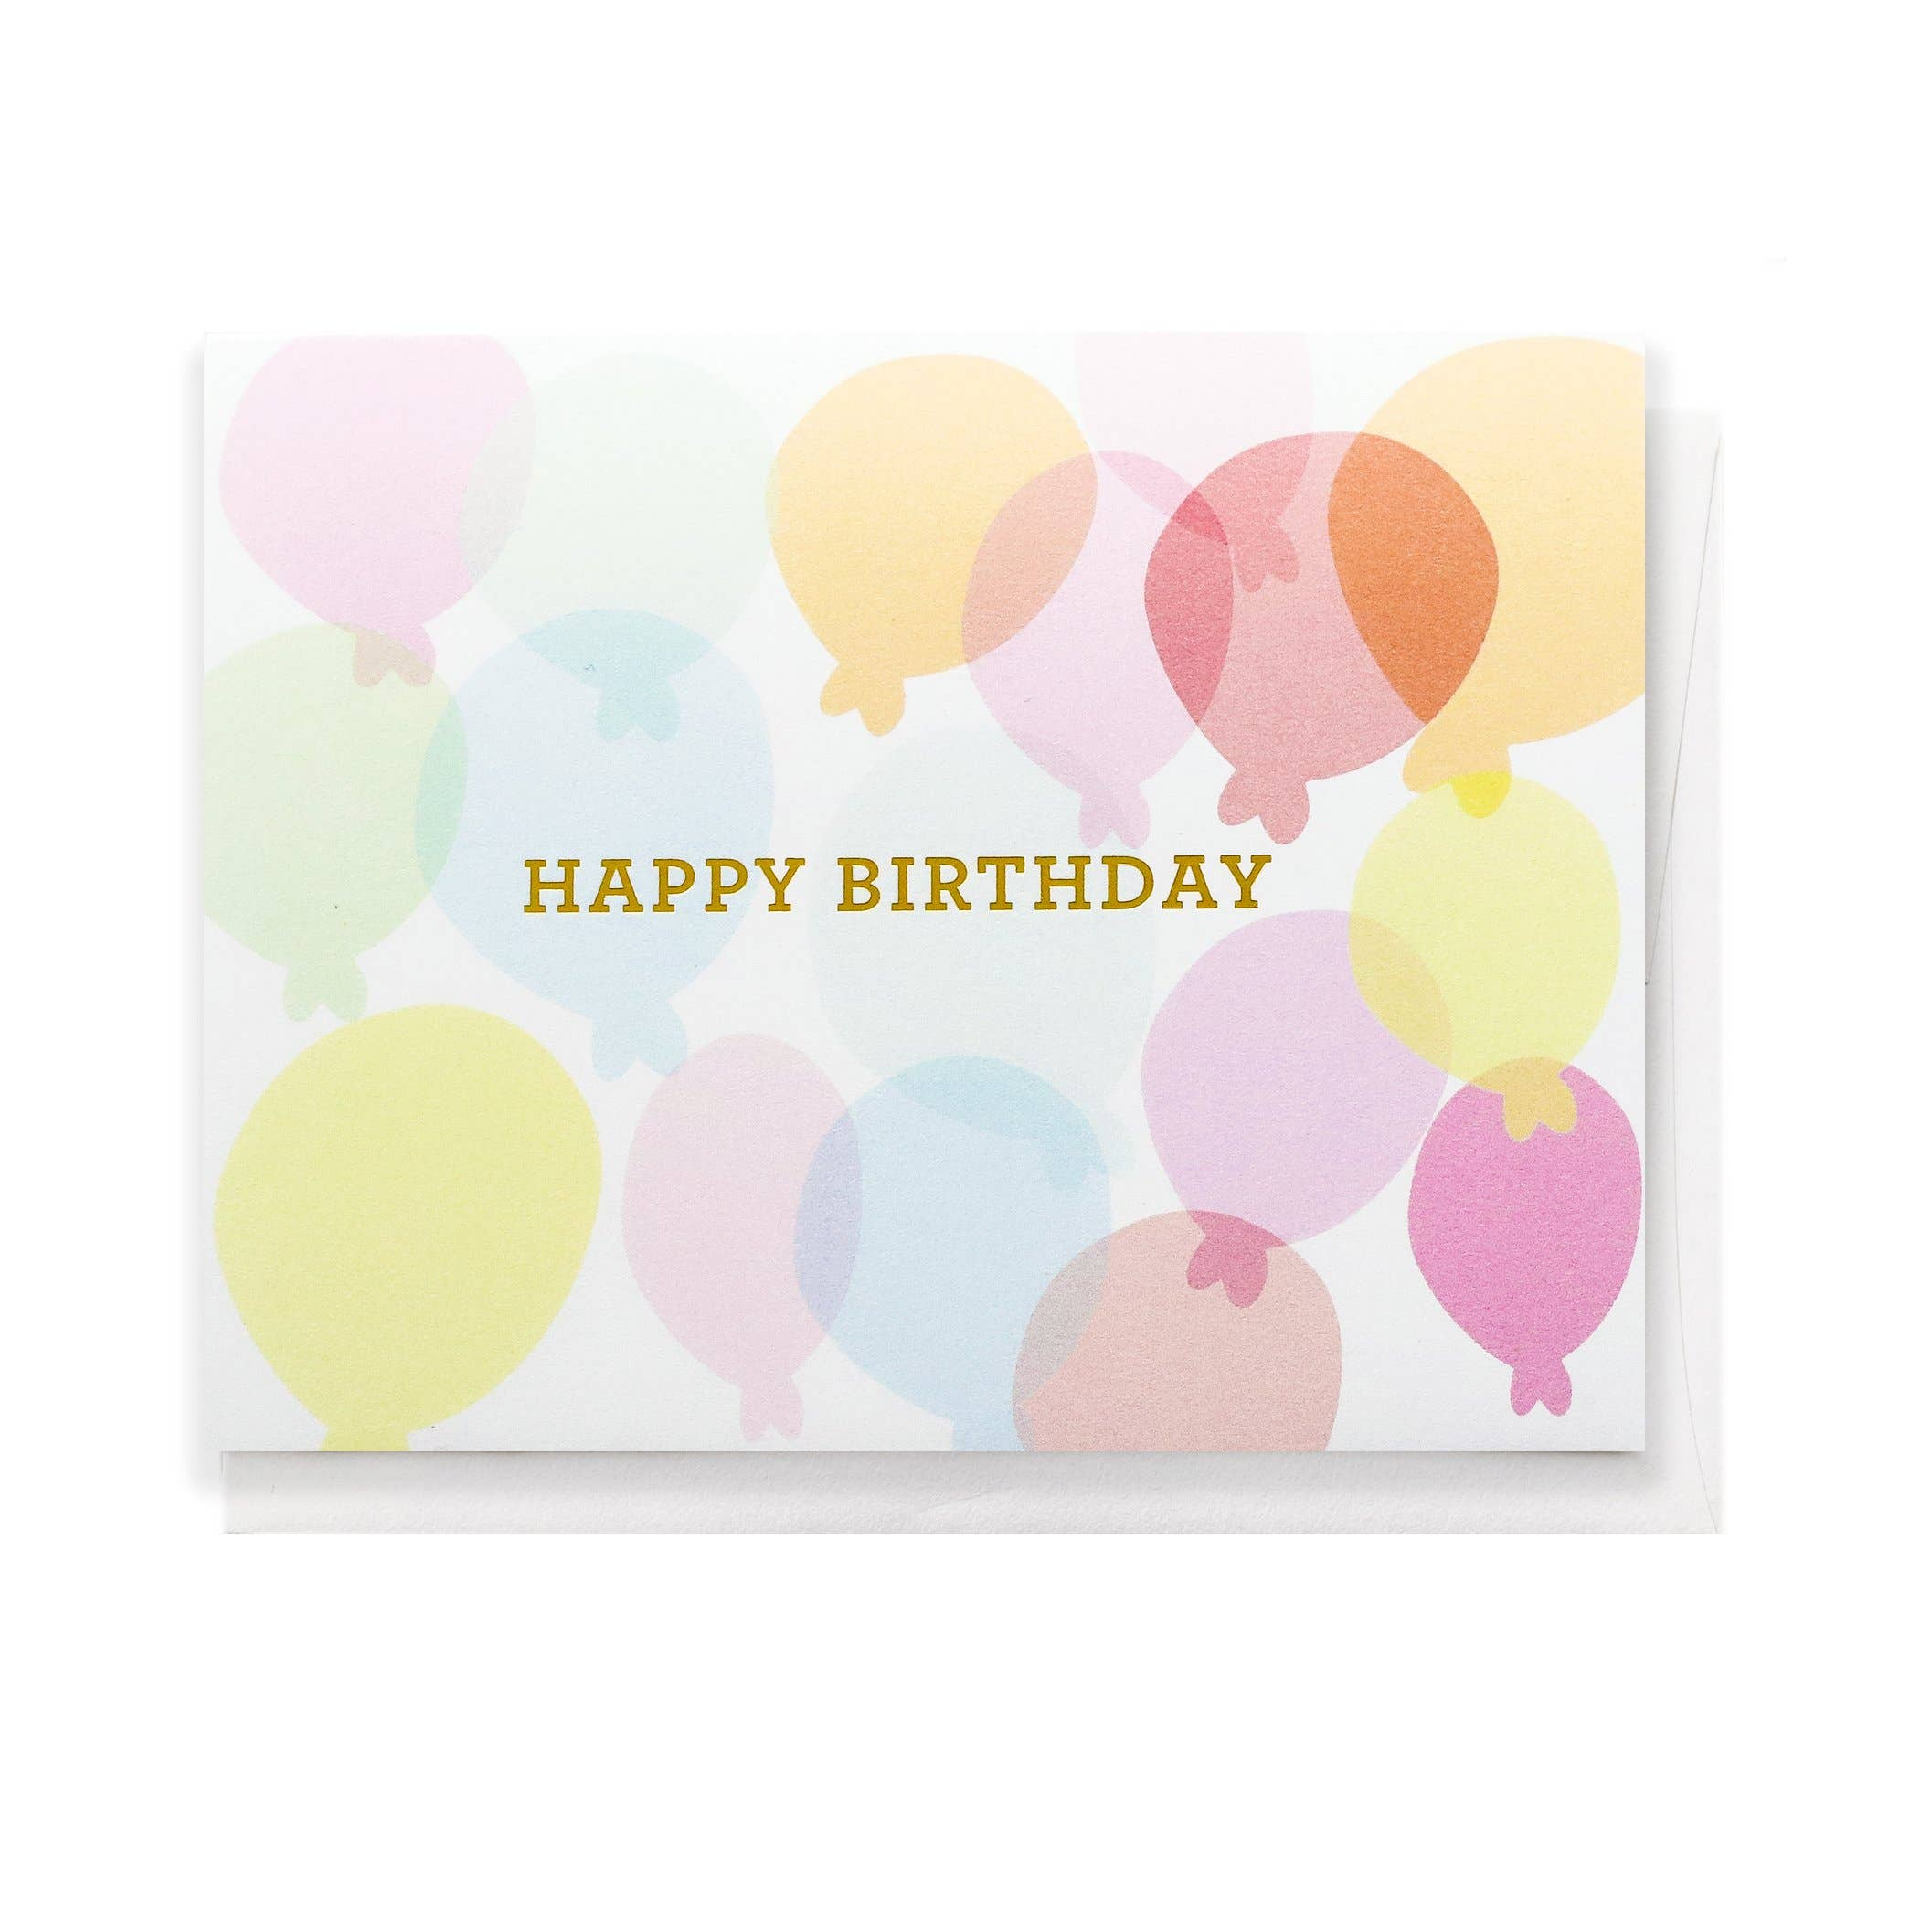 Penny Paper Co - Greeting Card - Happy Birthday - Balloons